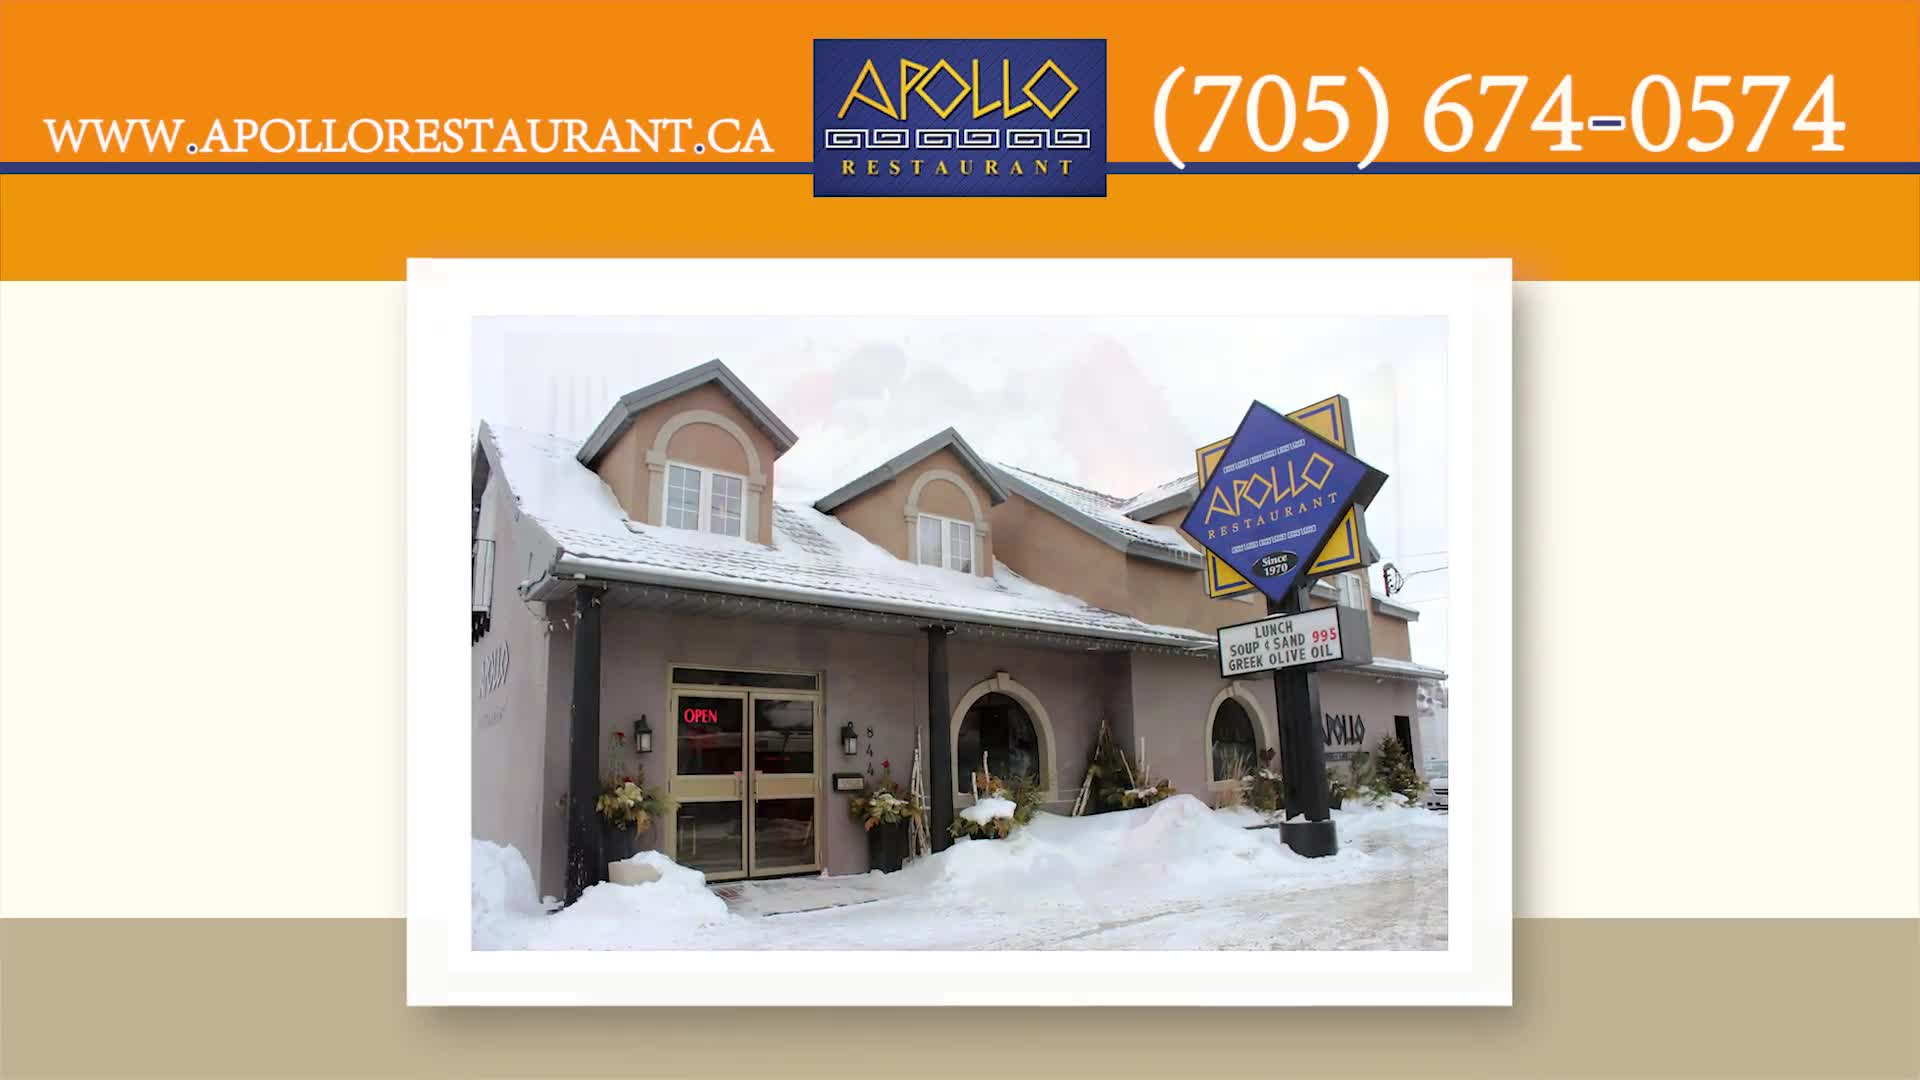 Apollo Restaurant & Tavern - Restaurants - 7056740574